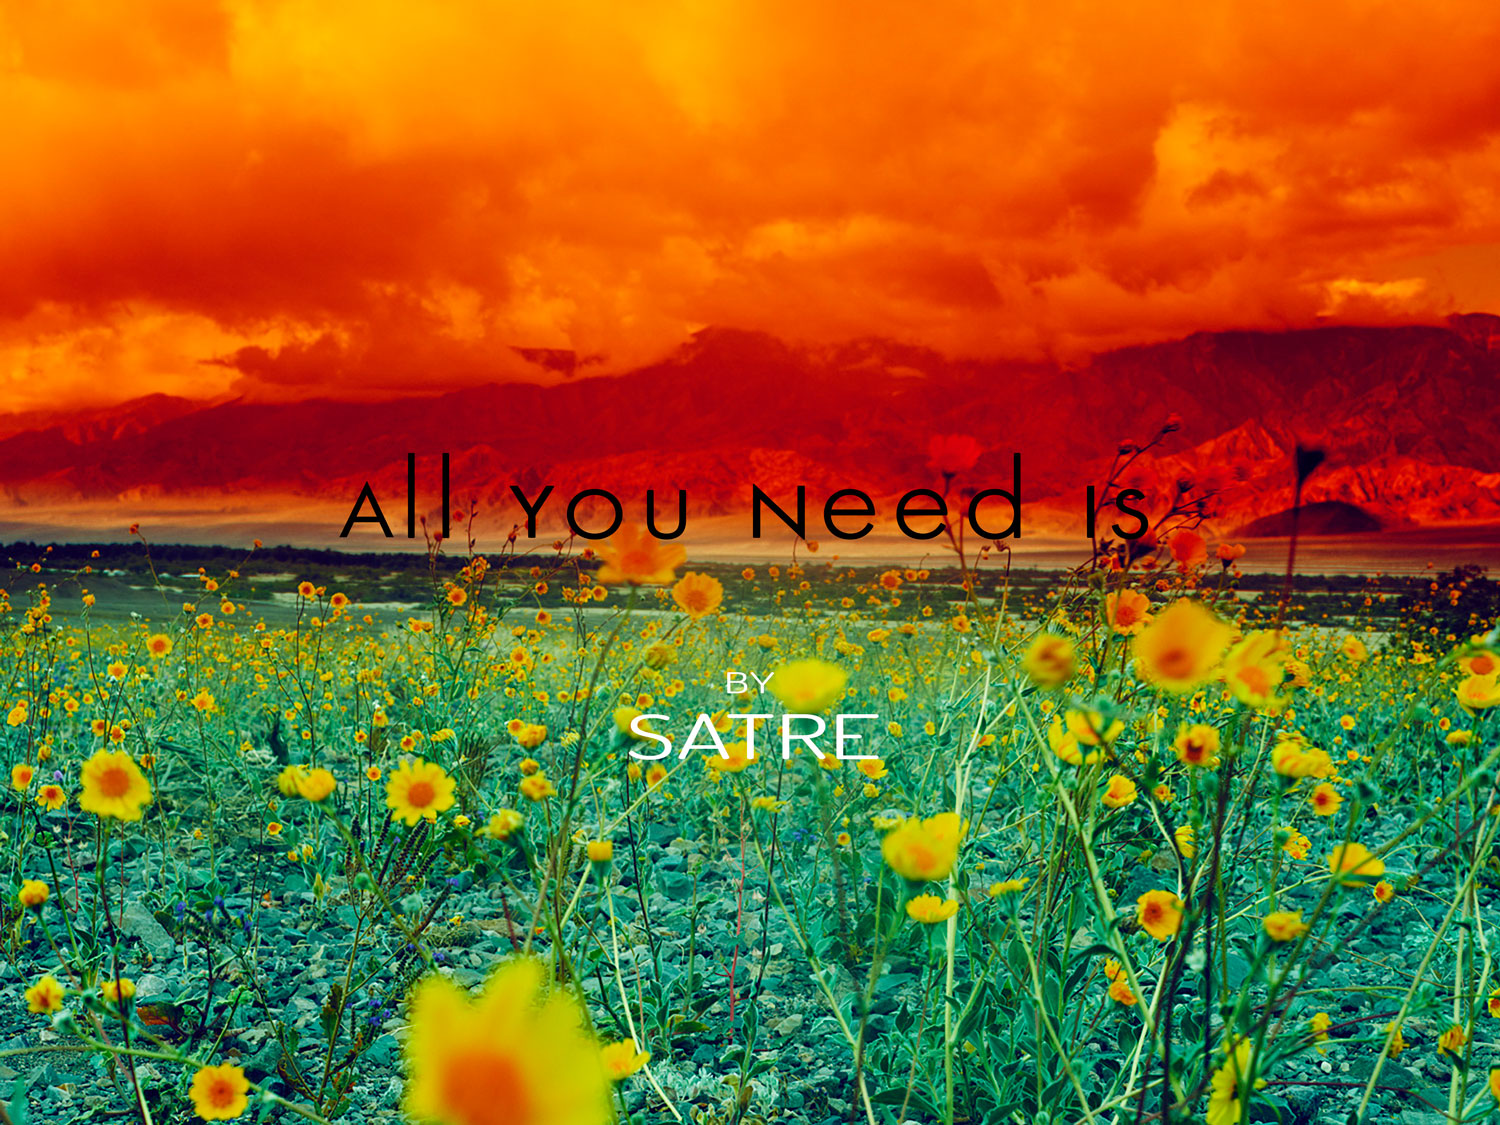 All-You-Need-Is-Front-1500-geir-satre-a.jpg